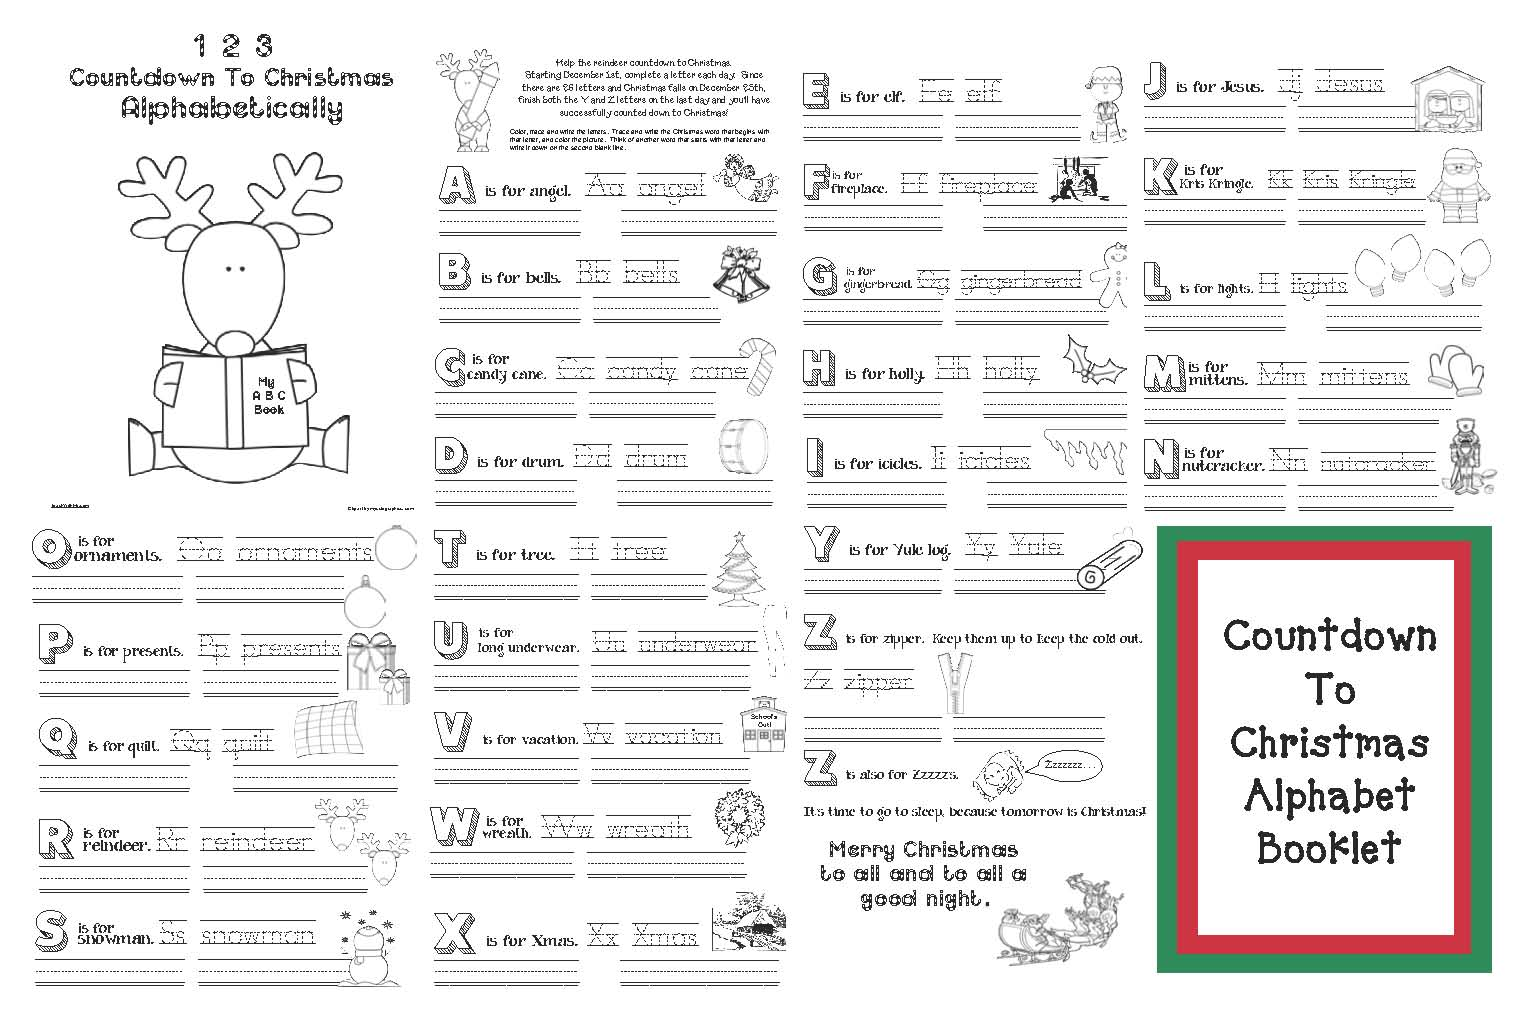 counting down to Christmas activities, gingerbread crafts, santa crafts, elf crafts, christmas worksheets, christmas countdown crafts, christmas crafts, skip counting by 2's activities, december math activities, counting activities for december, alphabet activities, alphabet games, alphabet books, class made alphabet books, christmas alphabet booklet, elf activities, christmas coloring pages, santas beard countdown, counting down to christmas coloring pages,